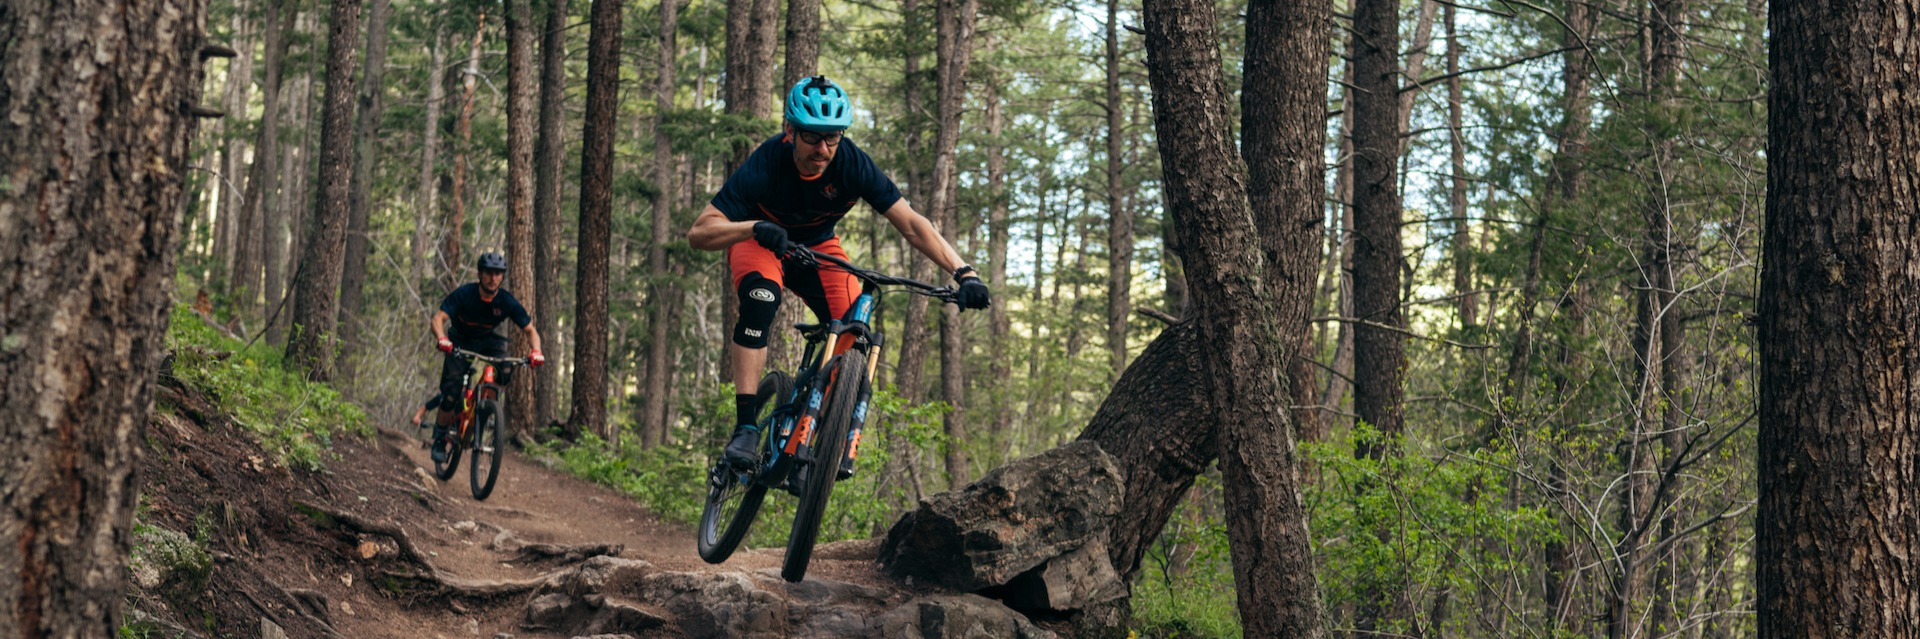 Two men riding mountain bikes down a wooded trail